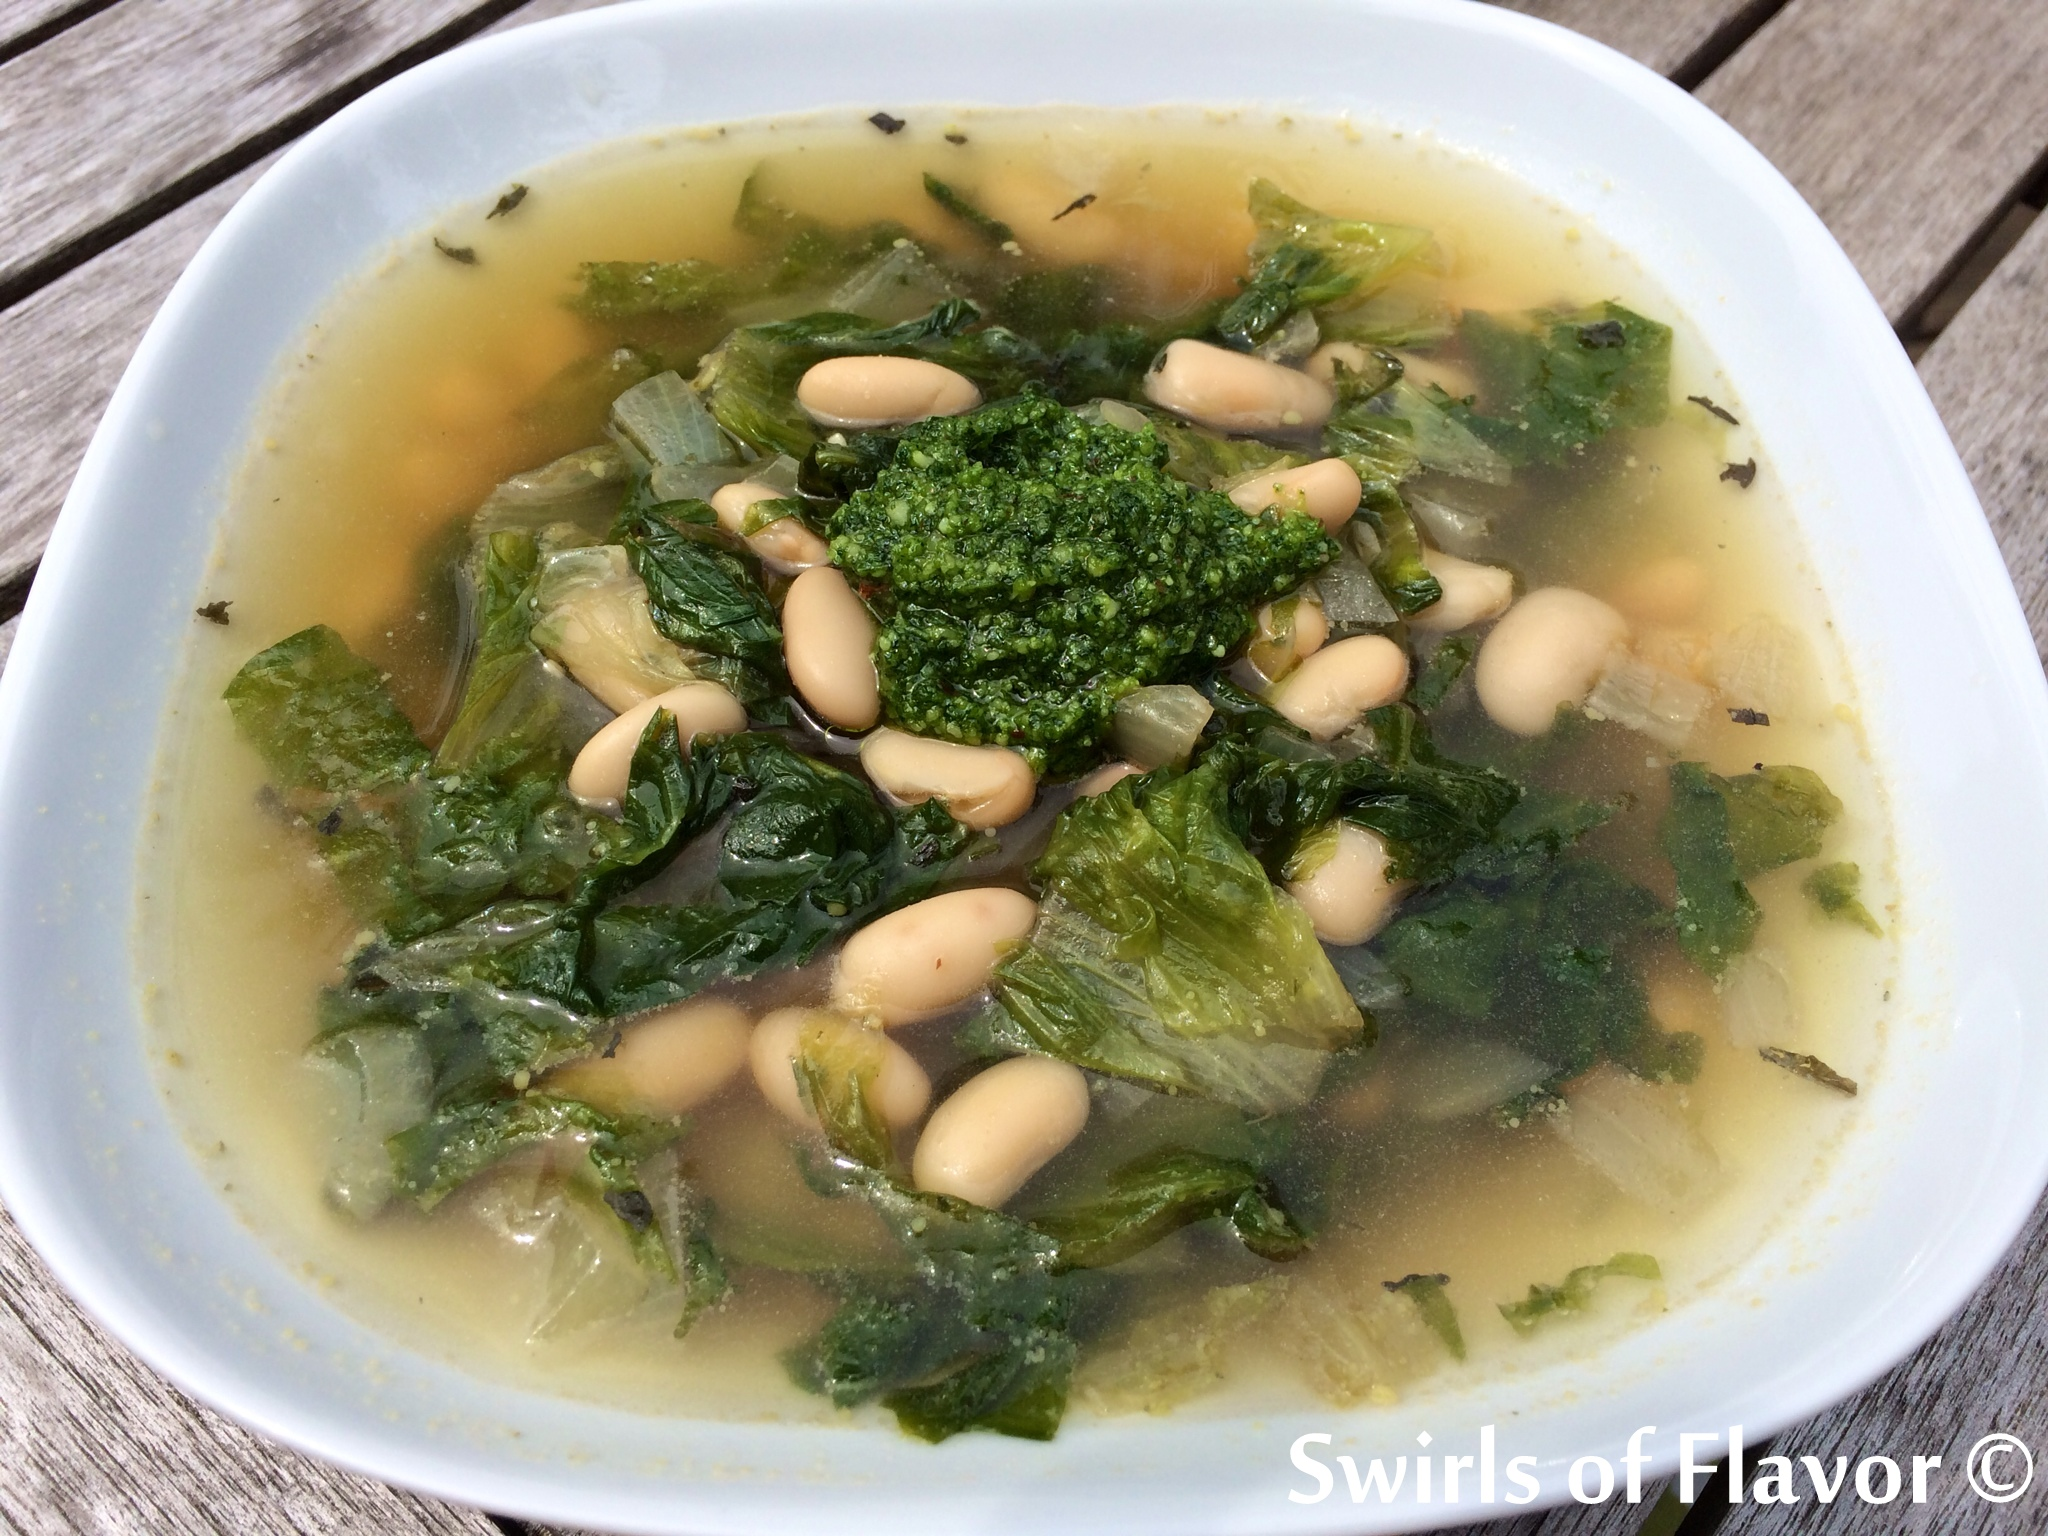 White Bean and Escarole Soup is a hearty vegetarian soup that's bursting with the flavors of fresh escarole, pesto and white beans. White Bean and Escarole Soup is a versatile recipe that can be either vegetarian, when prepared as is, or can be turned into a hearty chicken soup when replacing vegetable broth with chicken broth and adding shredded rotisserie chicken! #homemade #homemadesoup #fromscratchrecipe #easyrecipe #meatlessMonday #vegetarian #escarole #whitebeans #swirlsofflavor